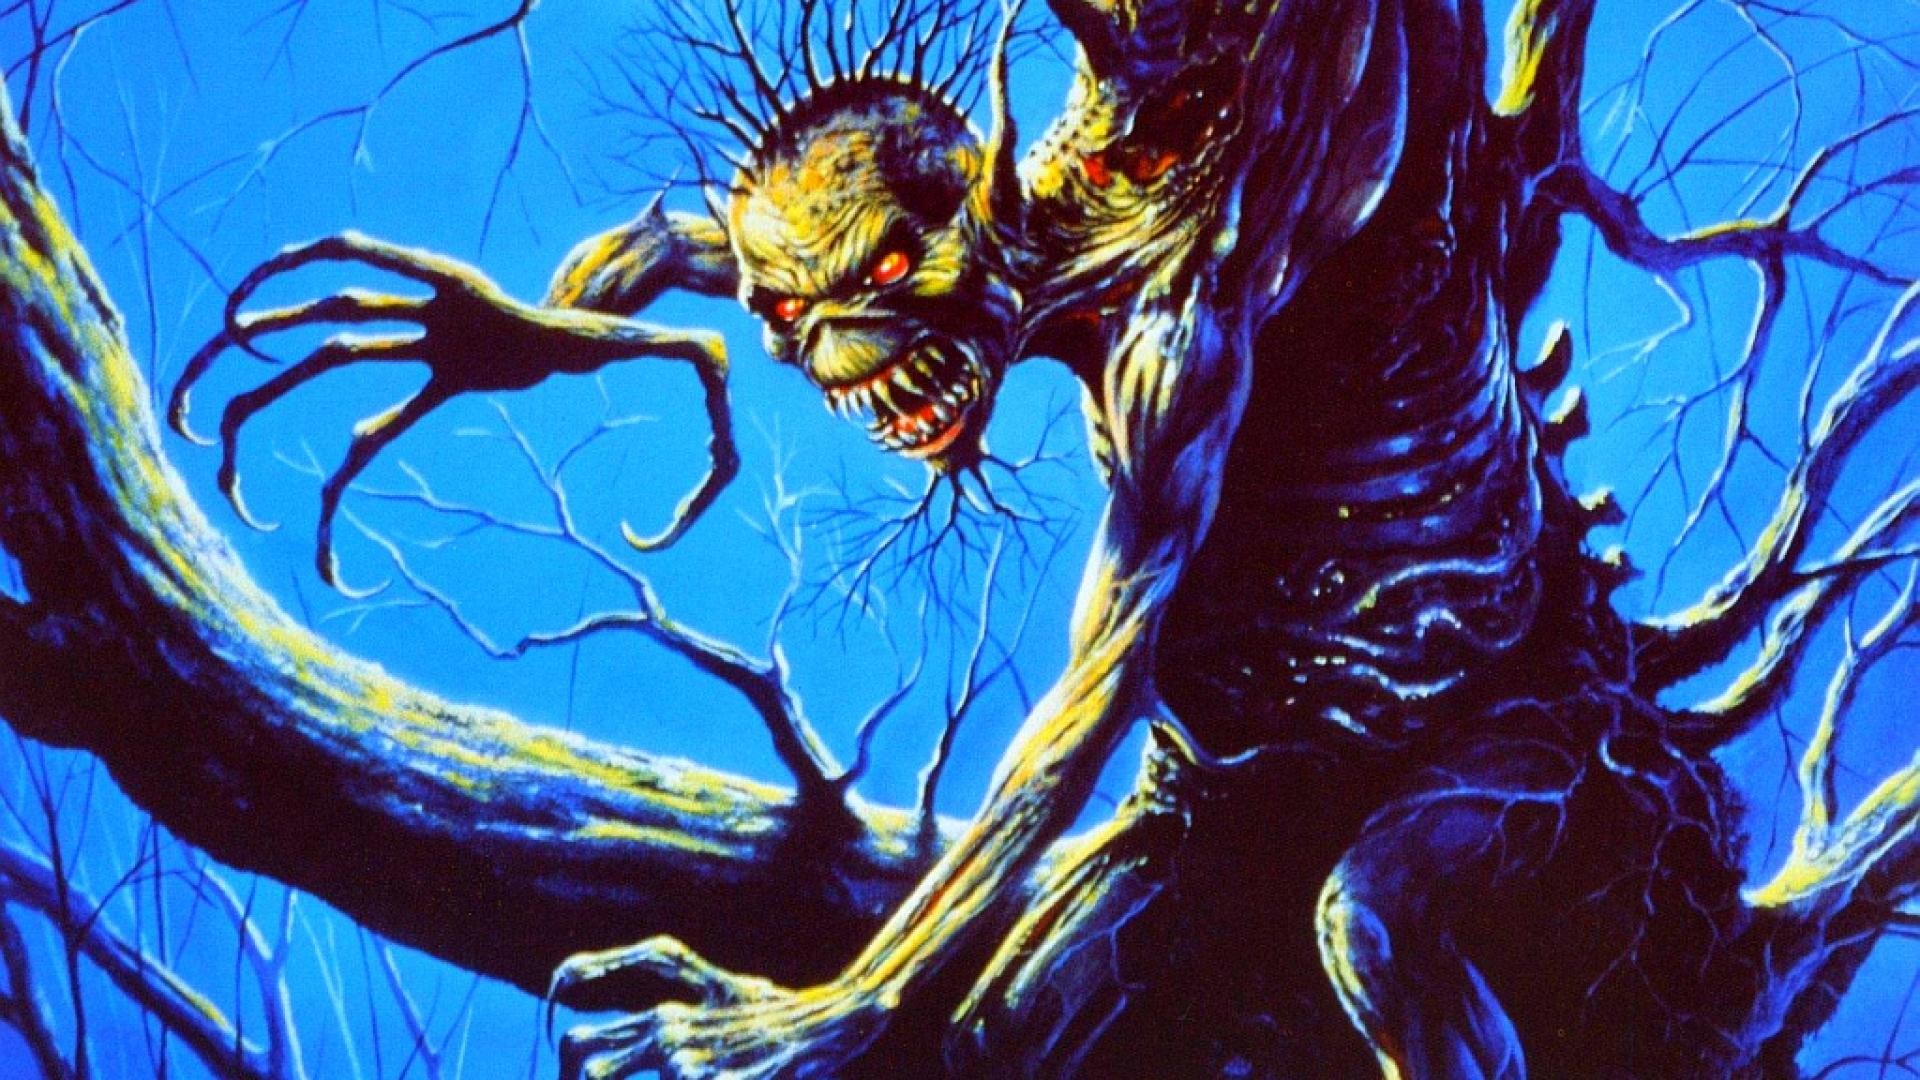 Iron Maiden HD Wallpapers, Iron Maiden Images, New Wallpapers